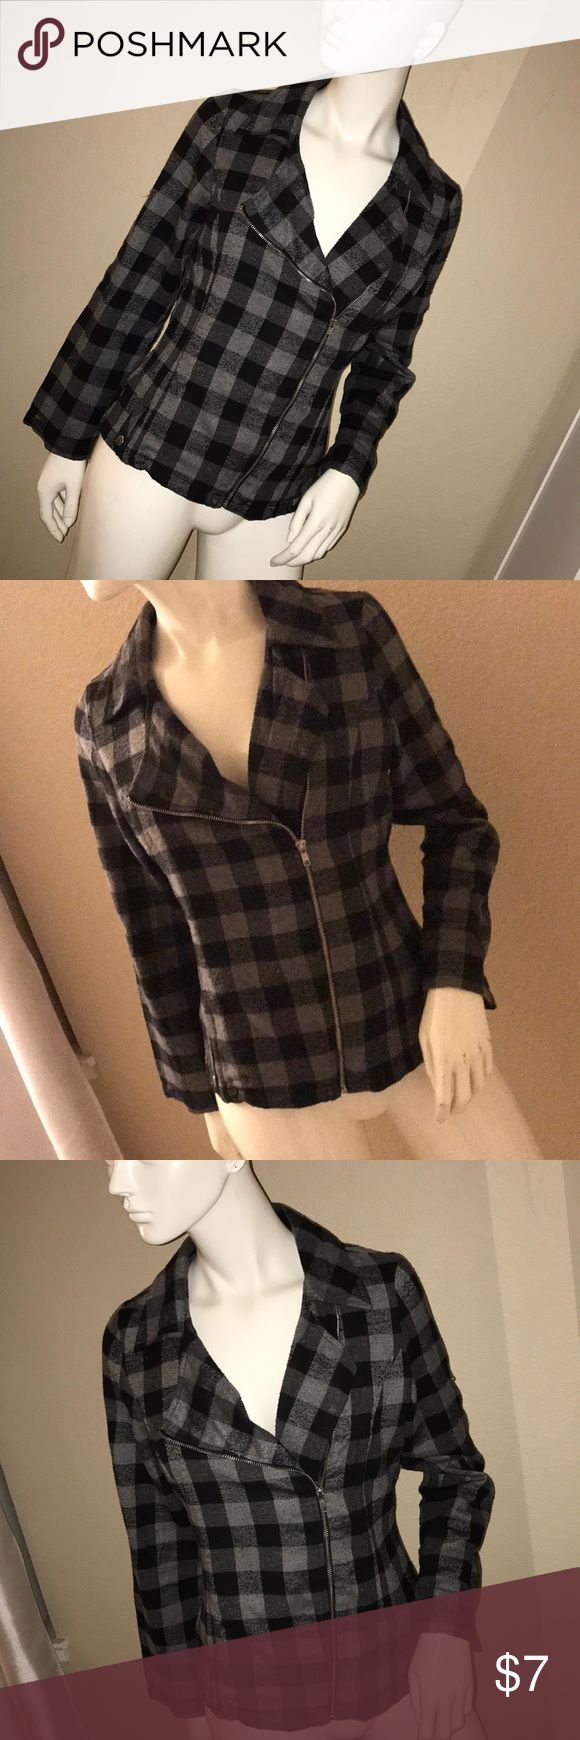 Flannel Jacket Good condition, zip up, sleeves can be